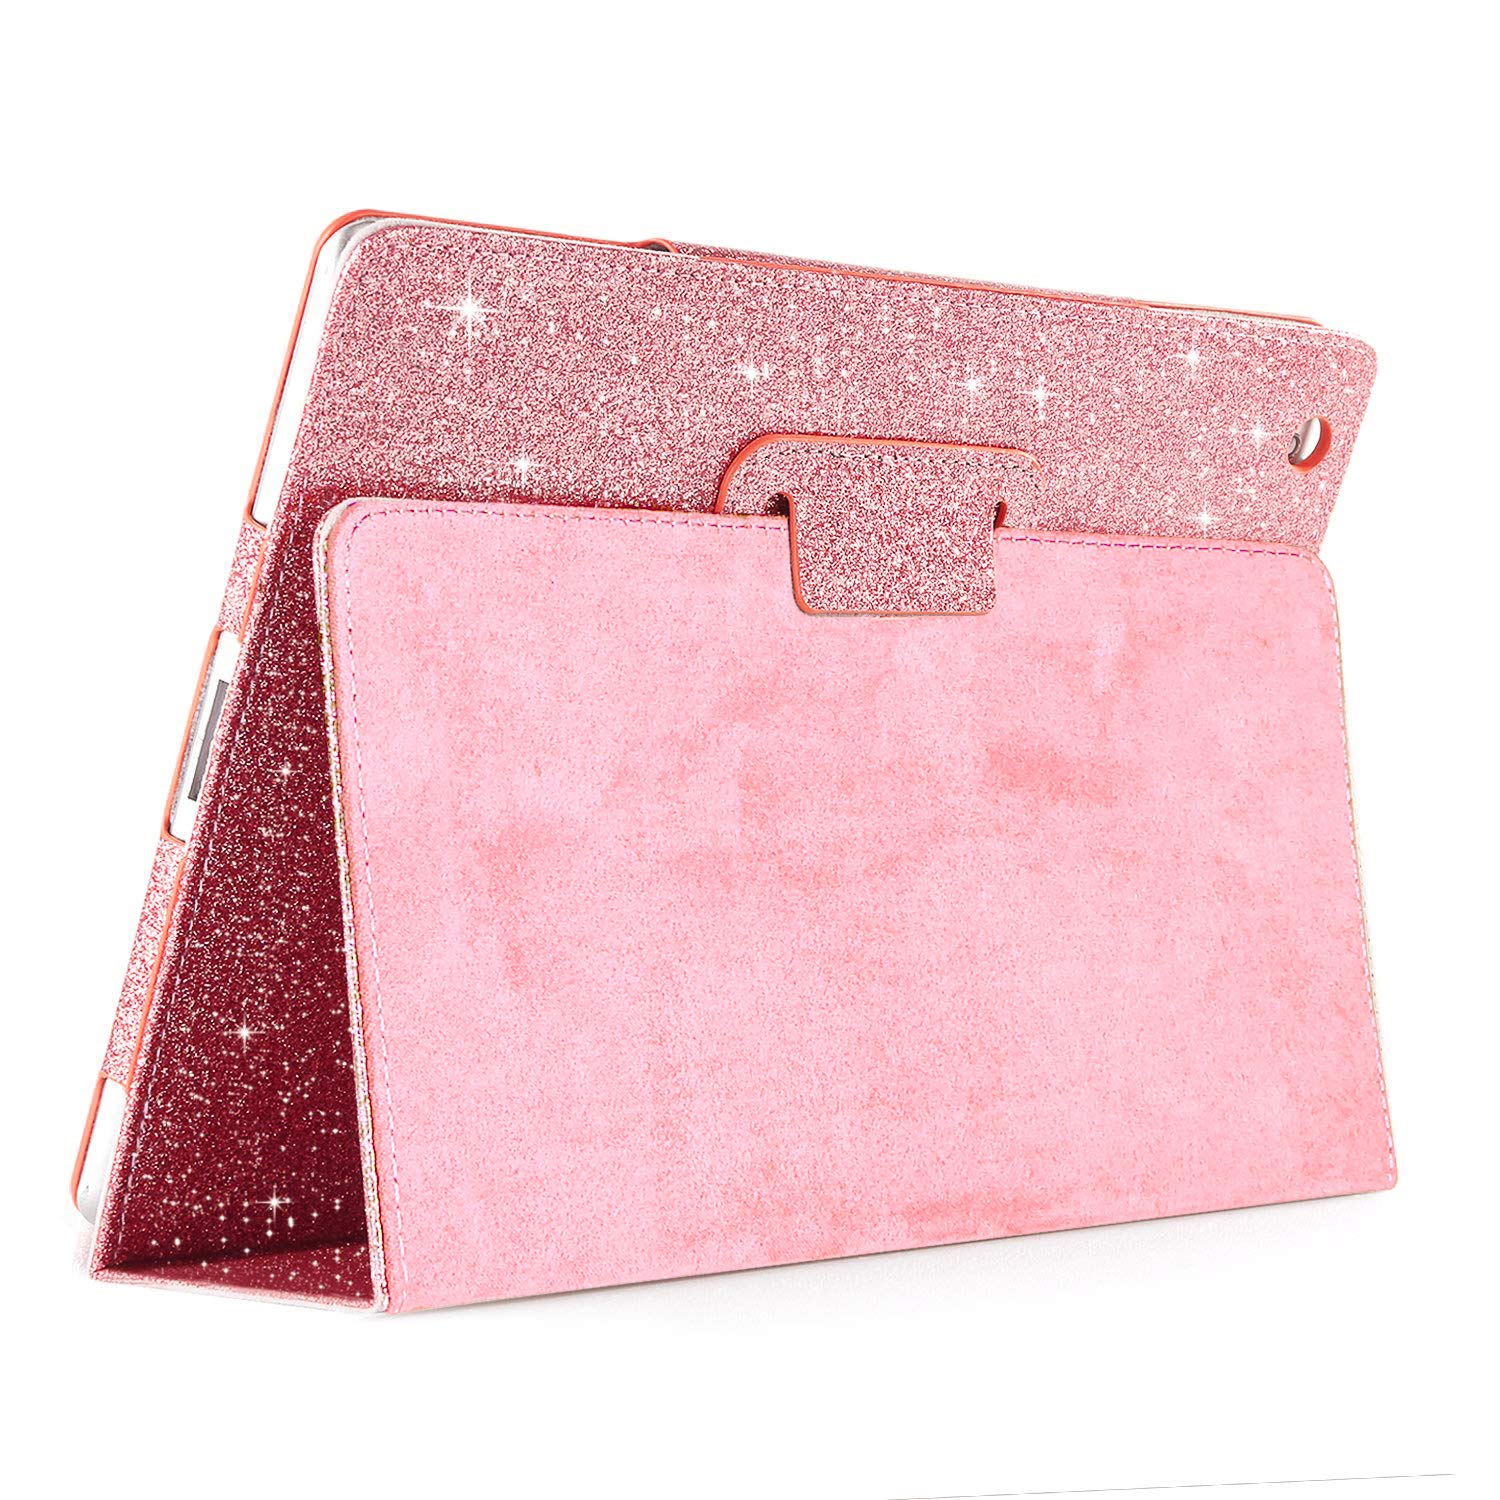 FANSONG New iPad 10.2-inch 2019 Case, iPad Flip Leather Sparkle Glitter Cases with Pen Slot Stand [Auto Sleep/Wake up] Smart Cover for iPad 7th Generation 2019 Case (Pink)